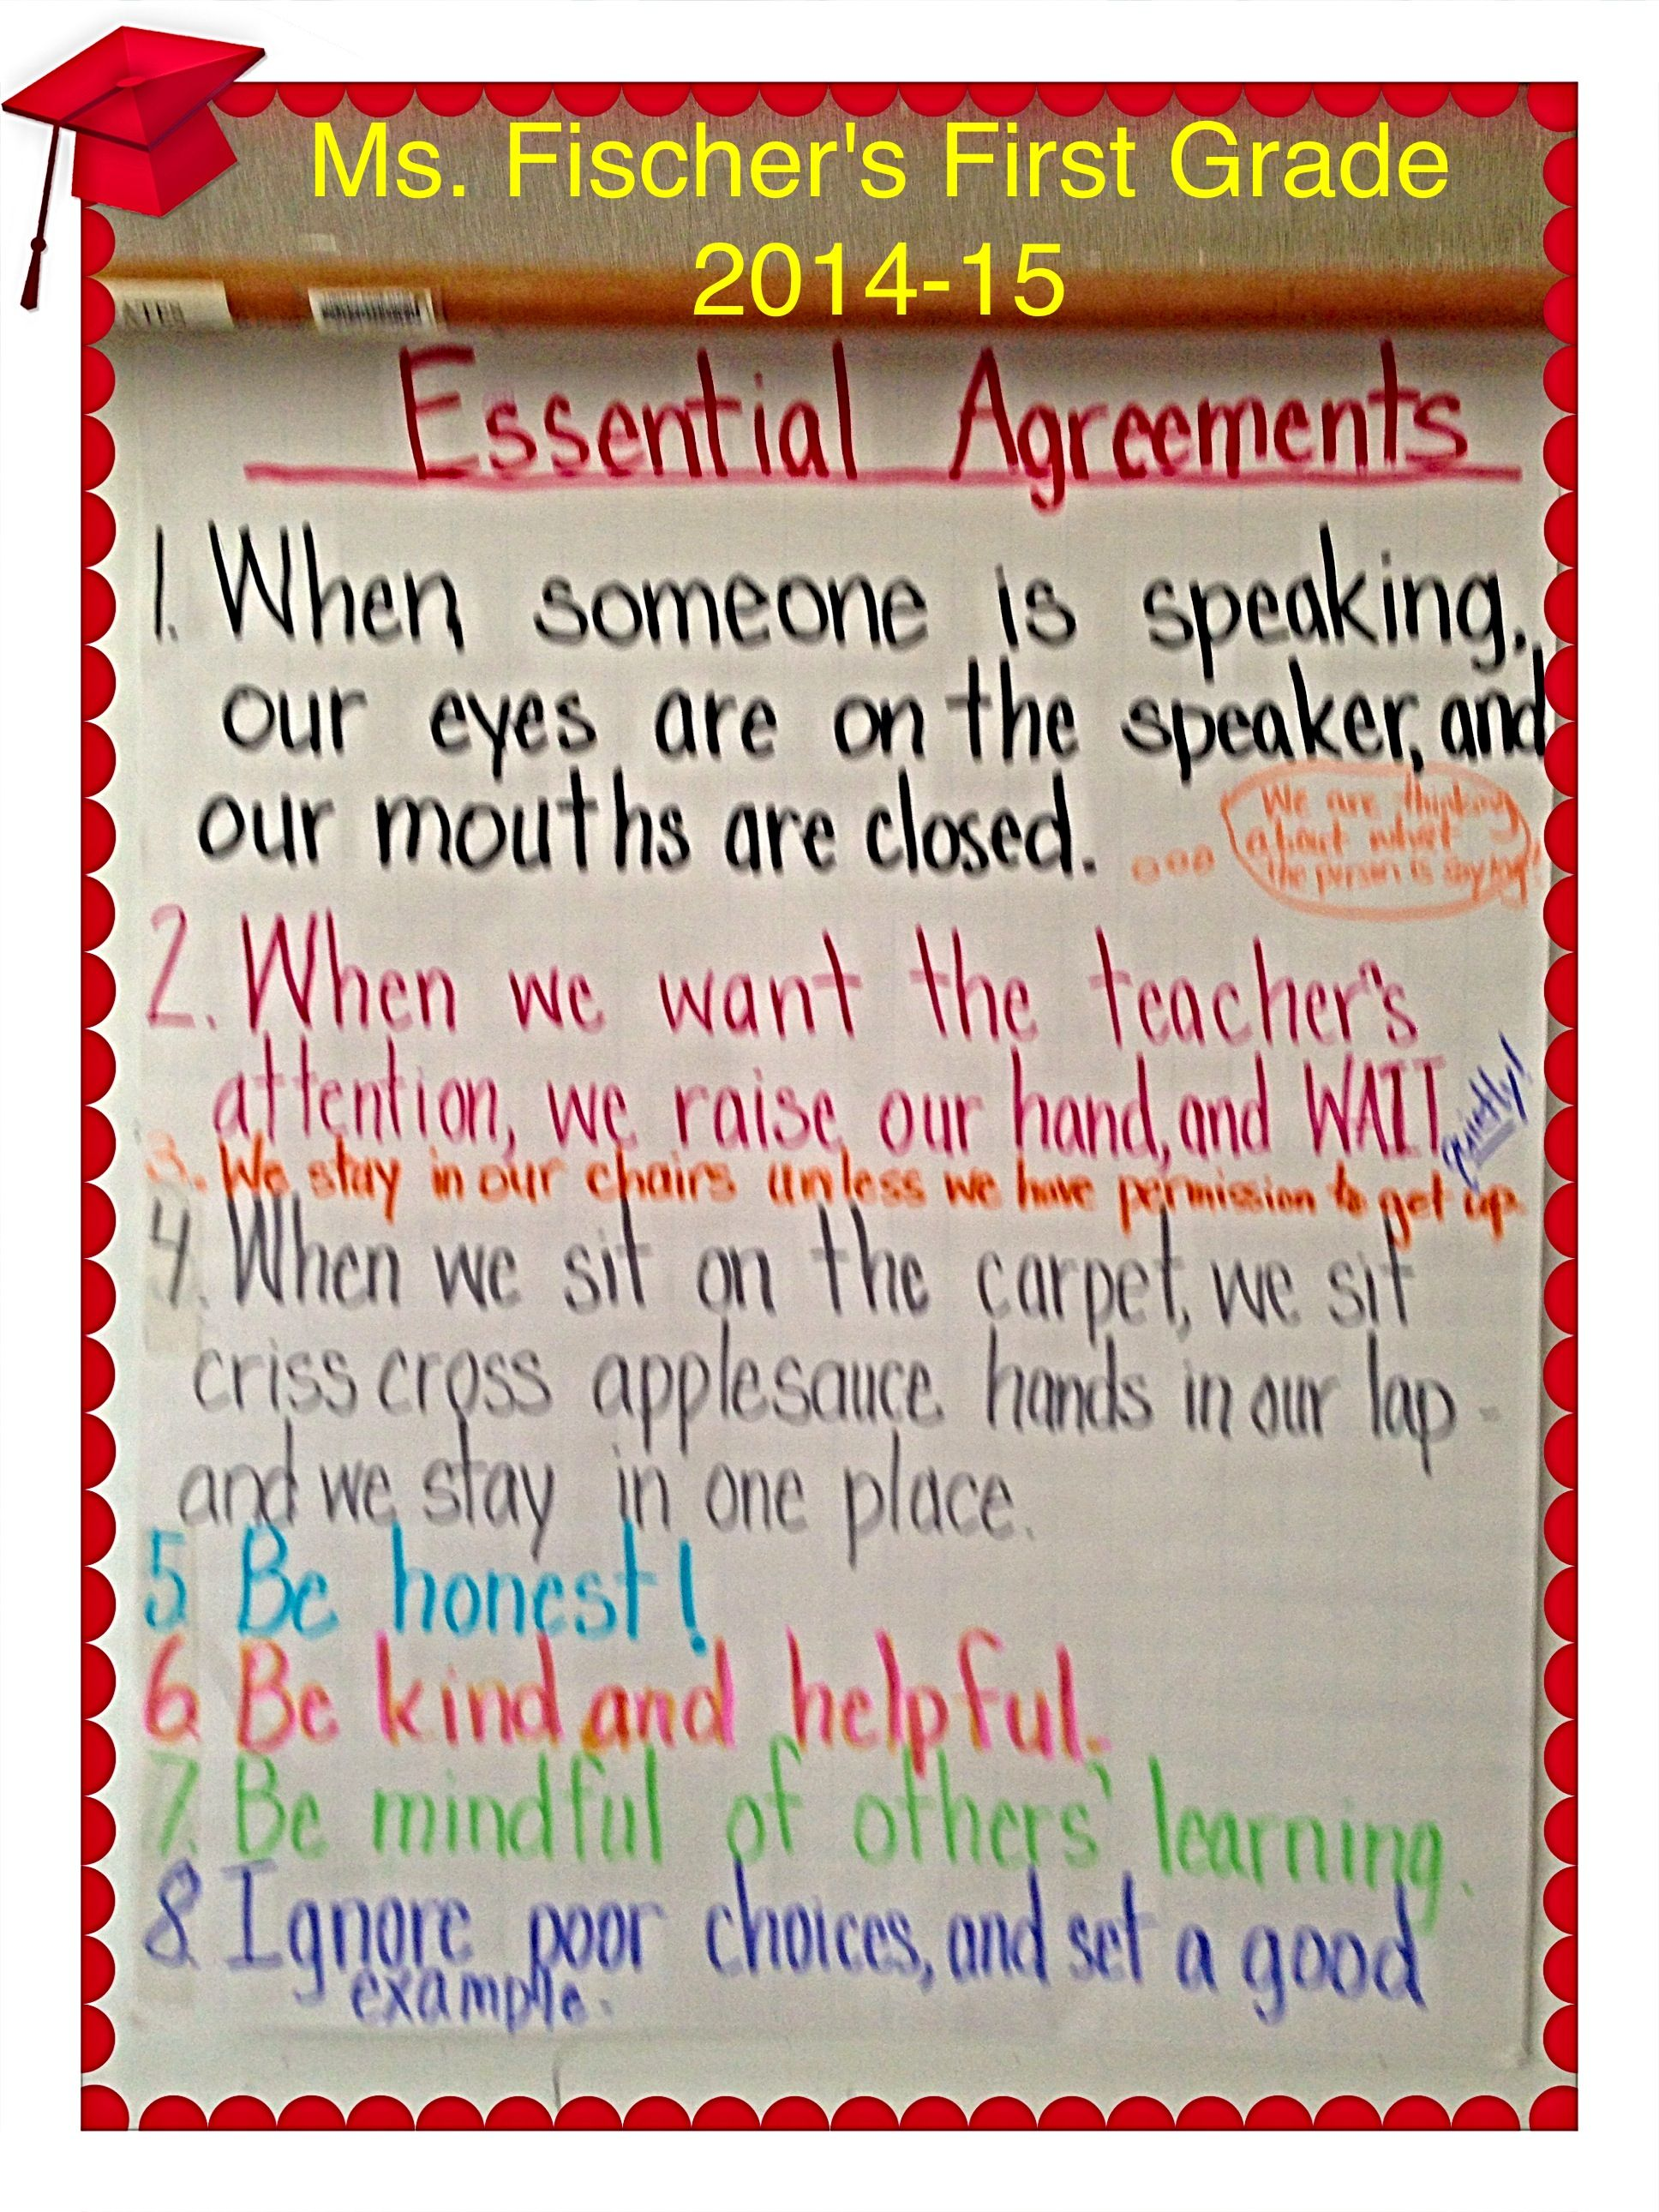 Essential Agreements Classroom Rules Made By Students With Teacher 2014 15 Classroom Rules Teacher End Of School